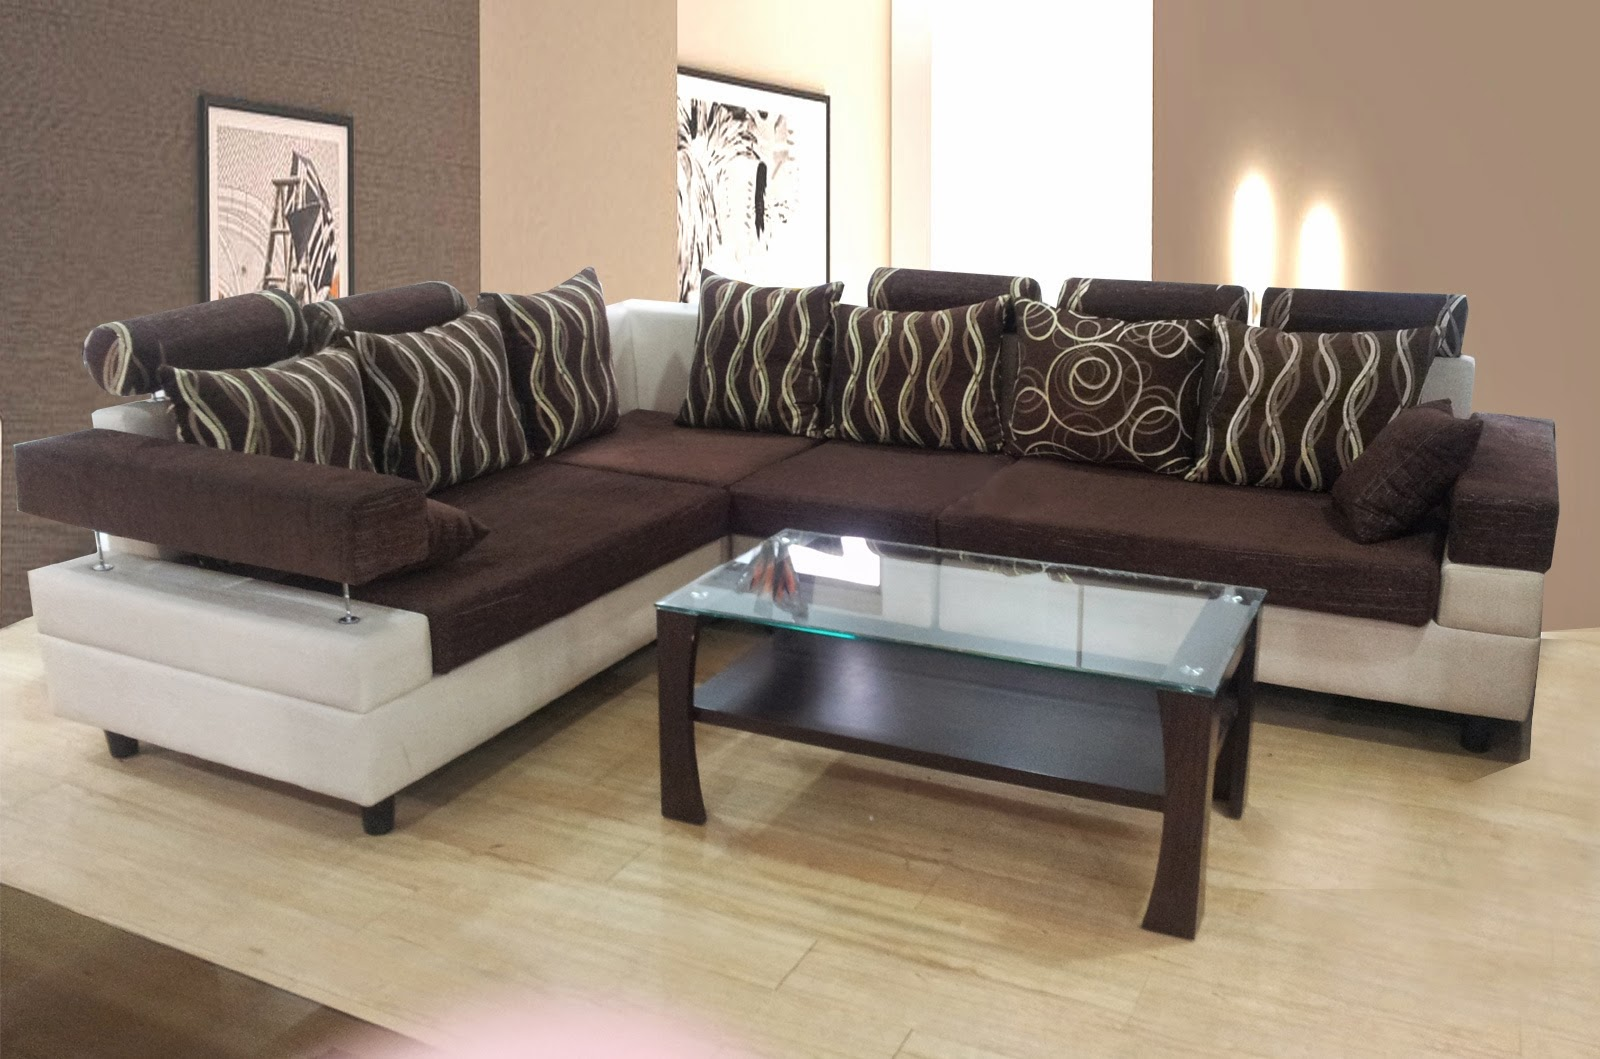 Sofa Set Design Ideas Latest Sofa Designs In Kenya Sofa Design